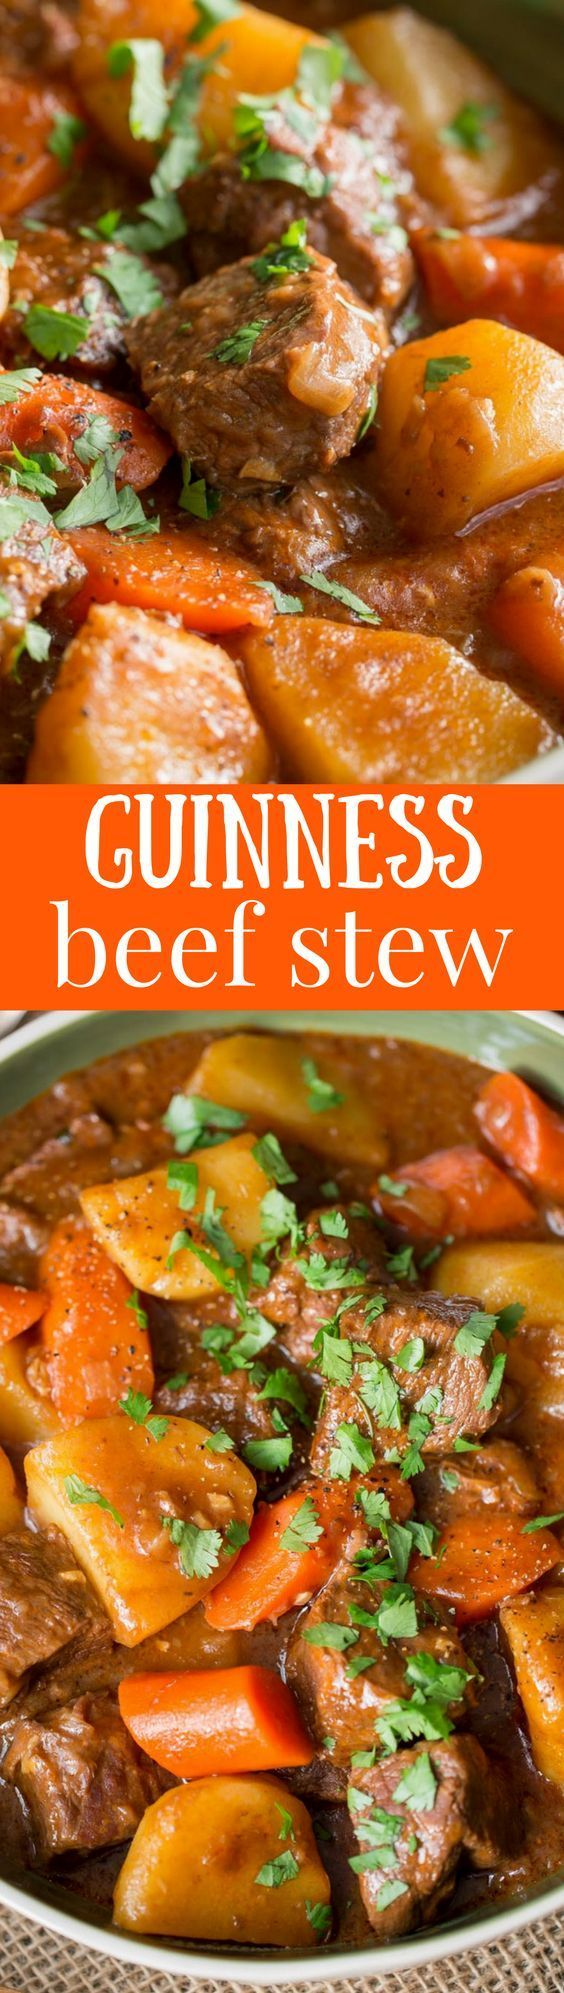 Guinness Beef Stew - Don't wait for St. Patrick's Day to enjoy this amazing stew. Tender chunks of beef are cooked, uncovered in a rich, thick and flavorful gravy with carrots and potatoes. www.savingdessert...